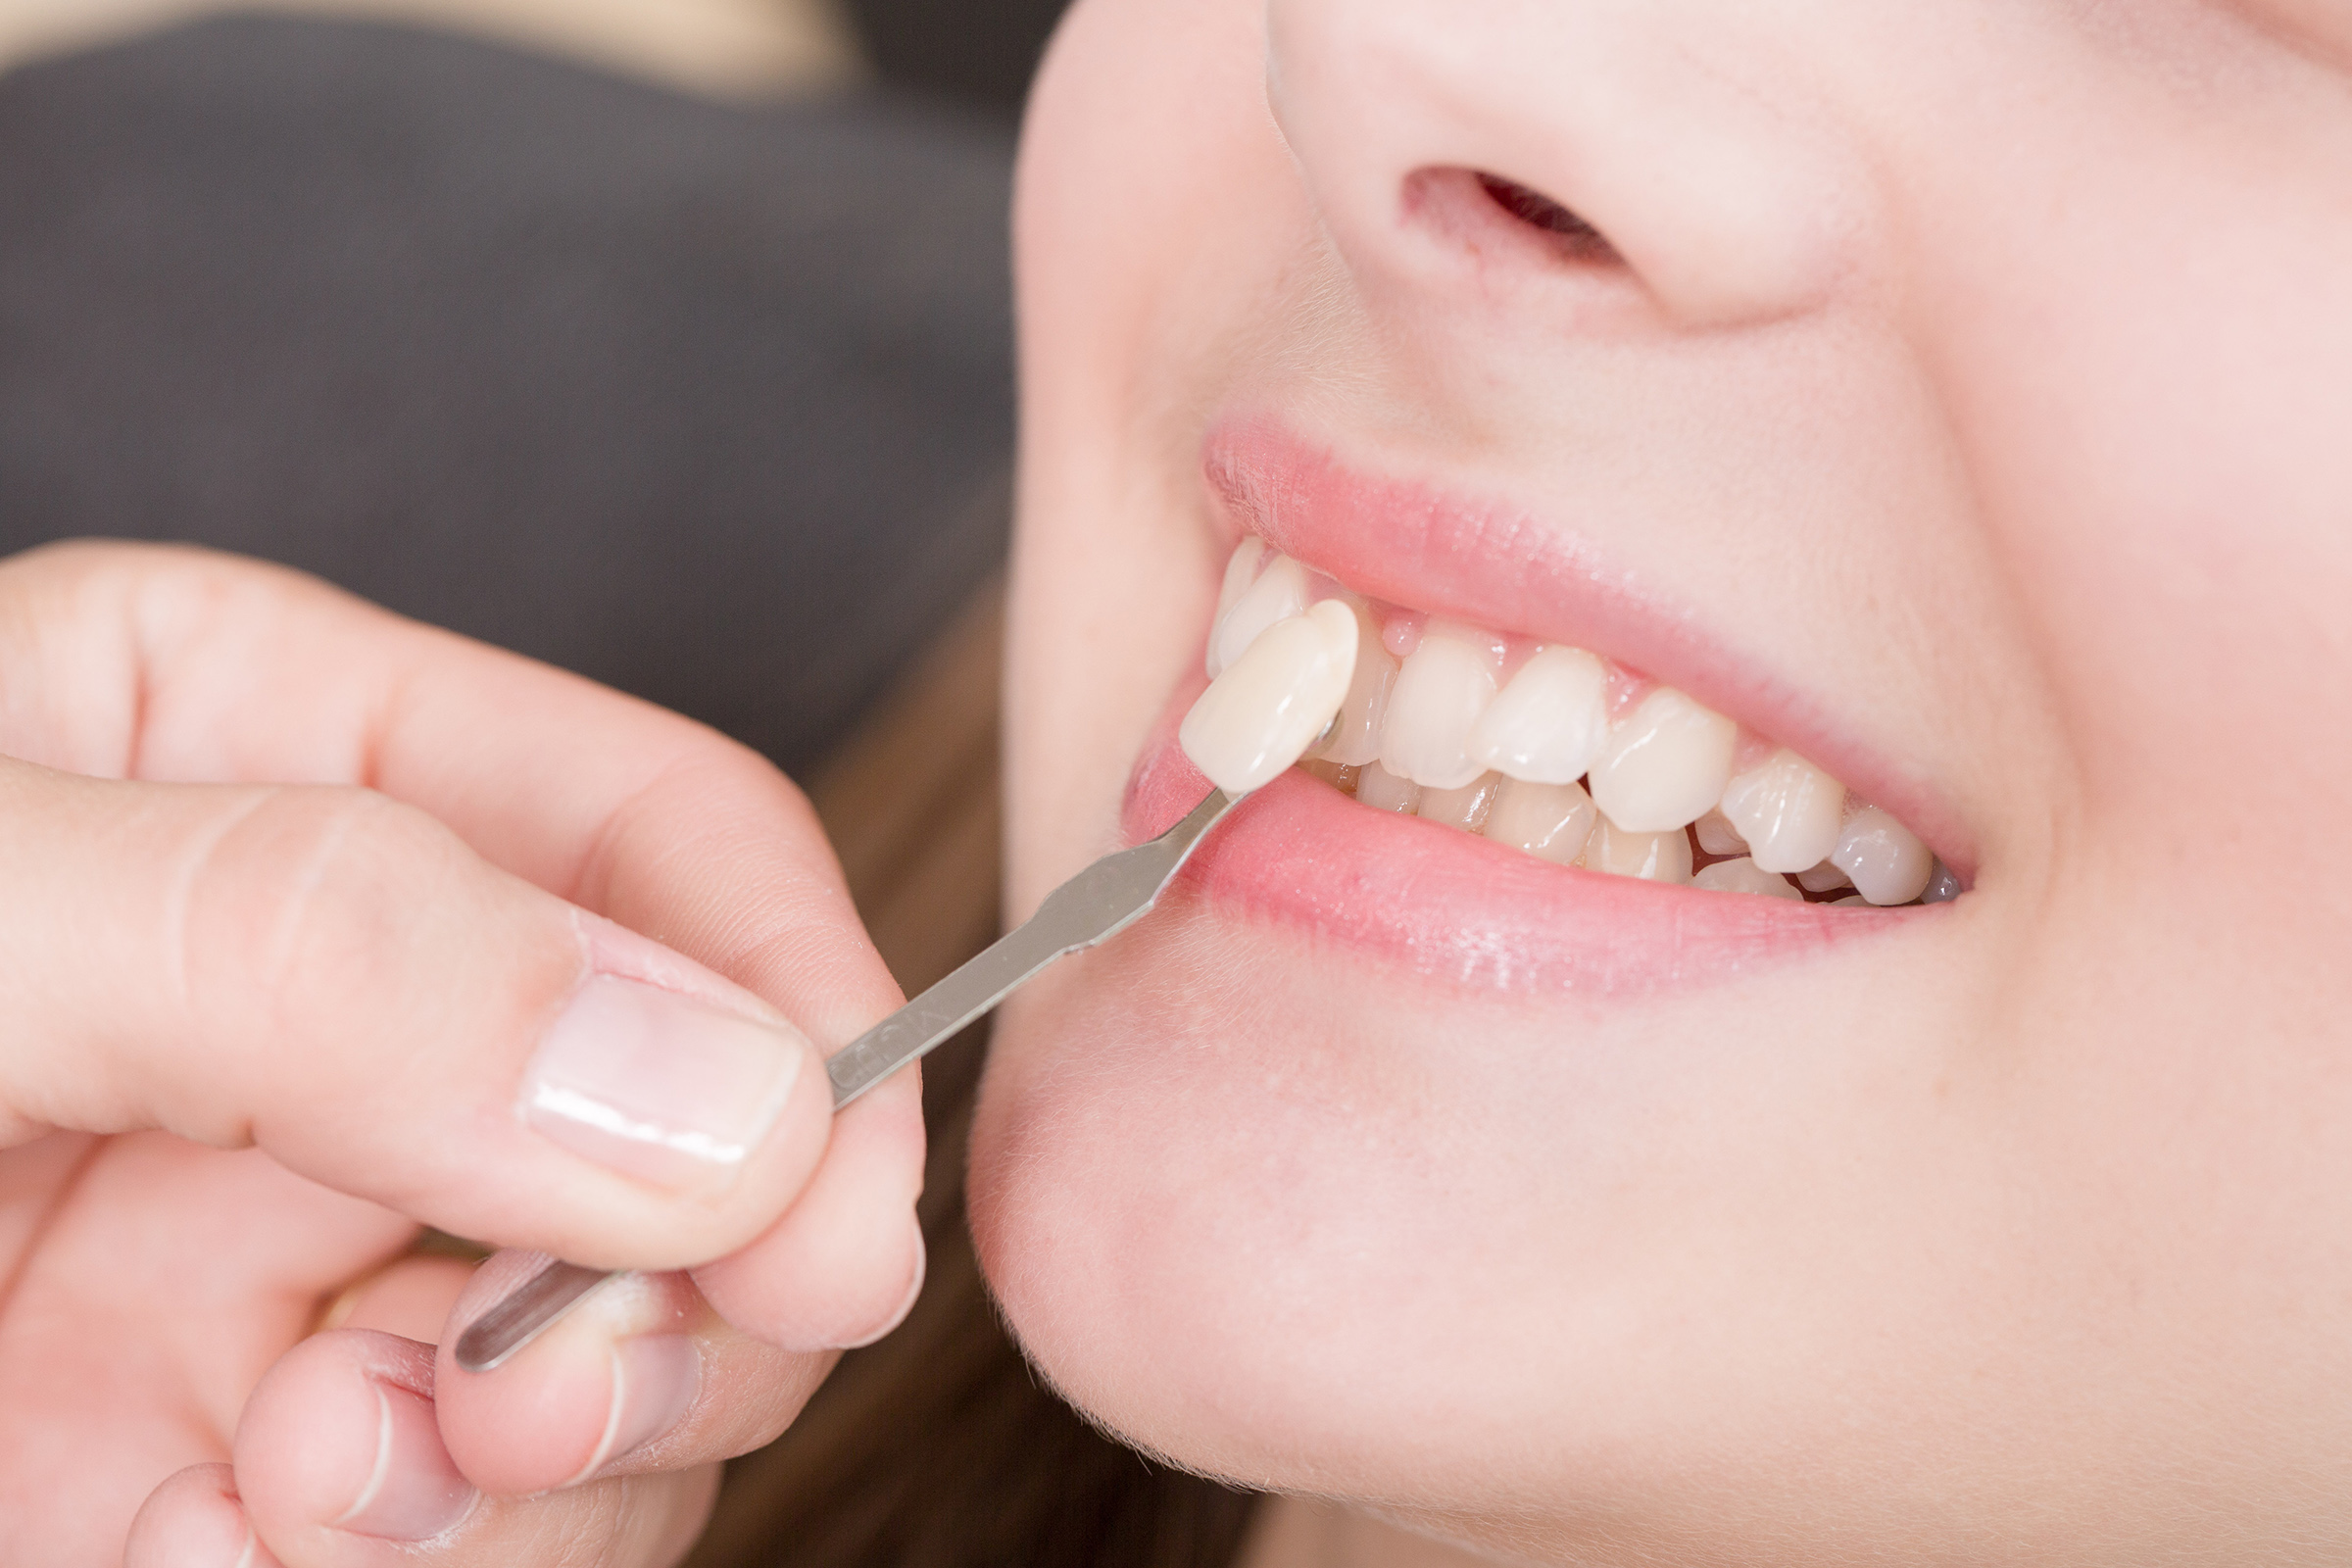 THE PROS & CONS OF DENTAL VENEERS